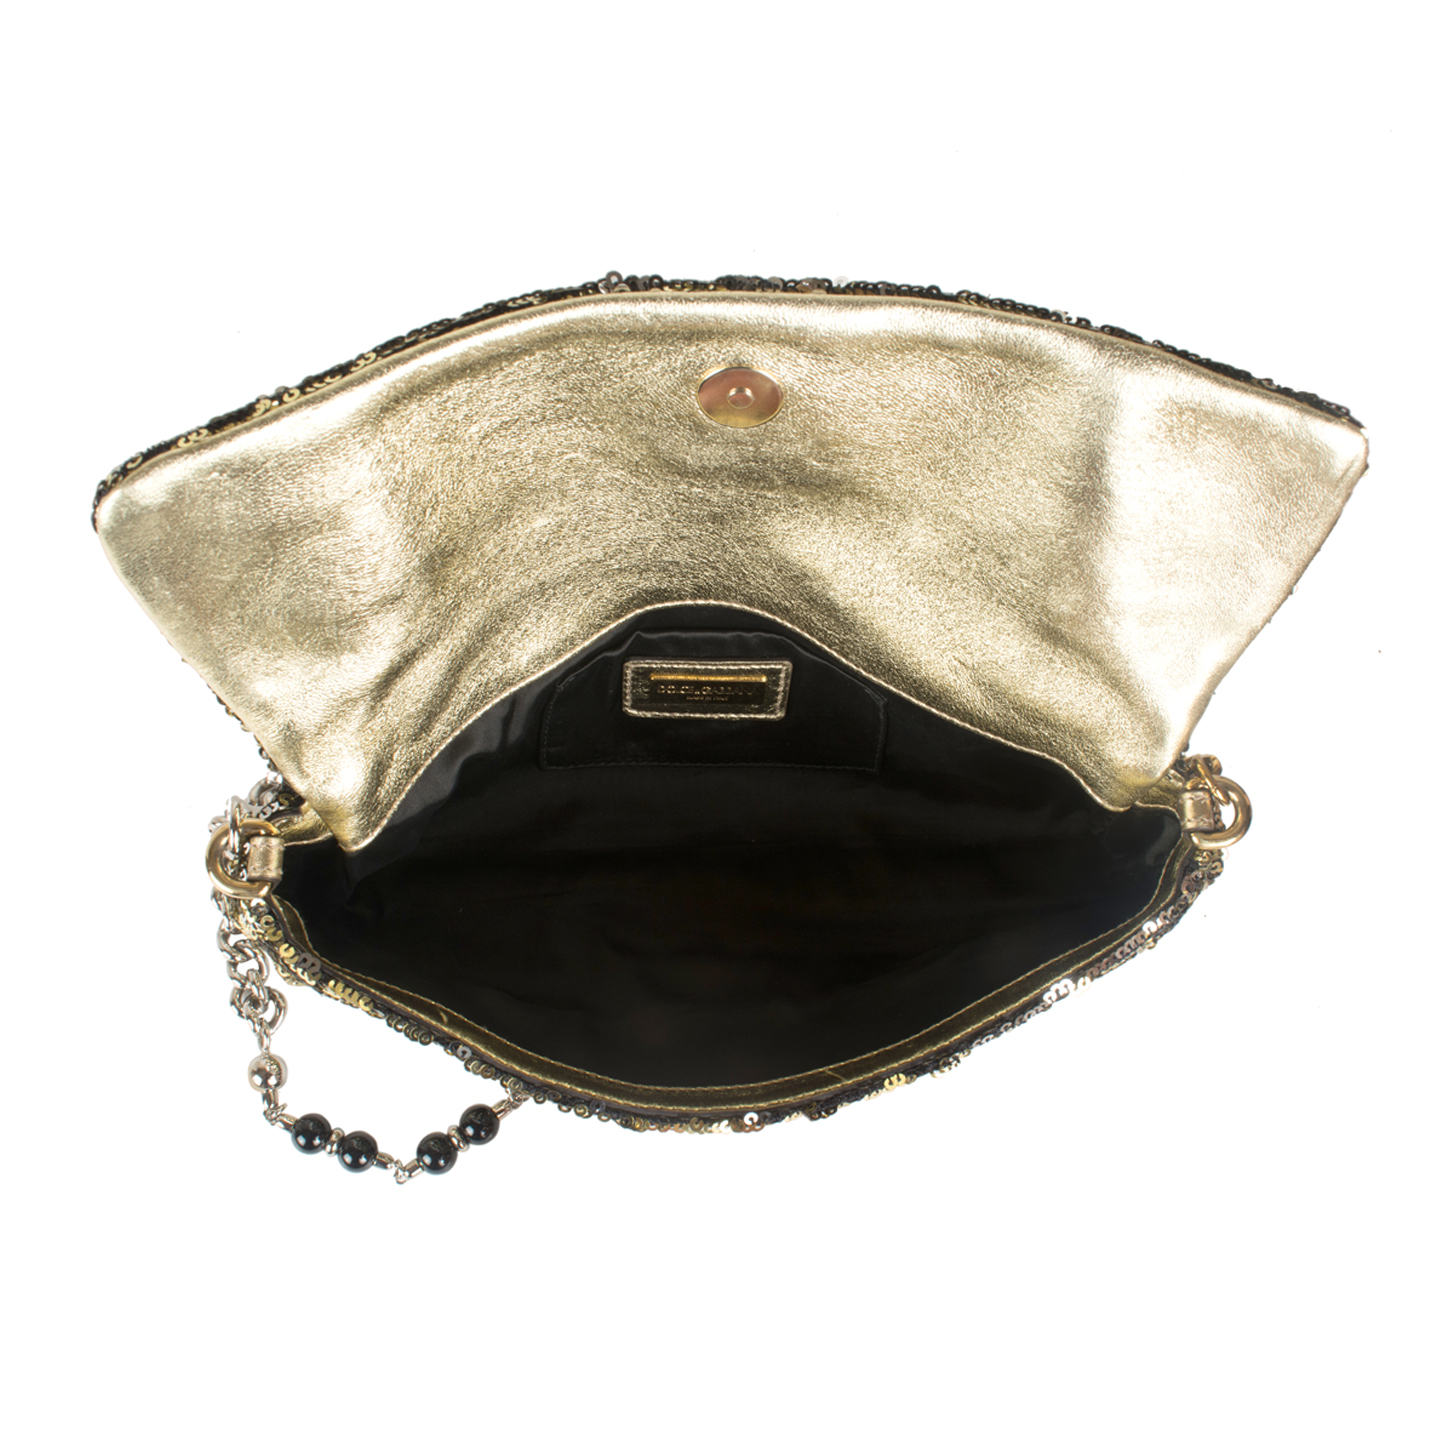 b2567d83d7 Dolce   Gabbana  Miss Charles  Sequined Evening Bag - LabelCentric